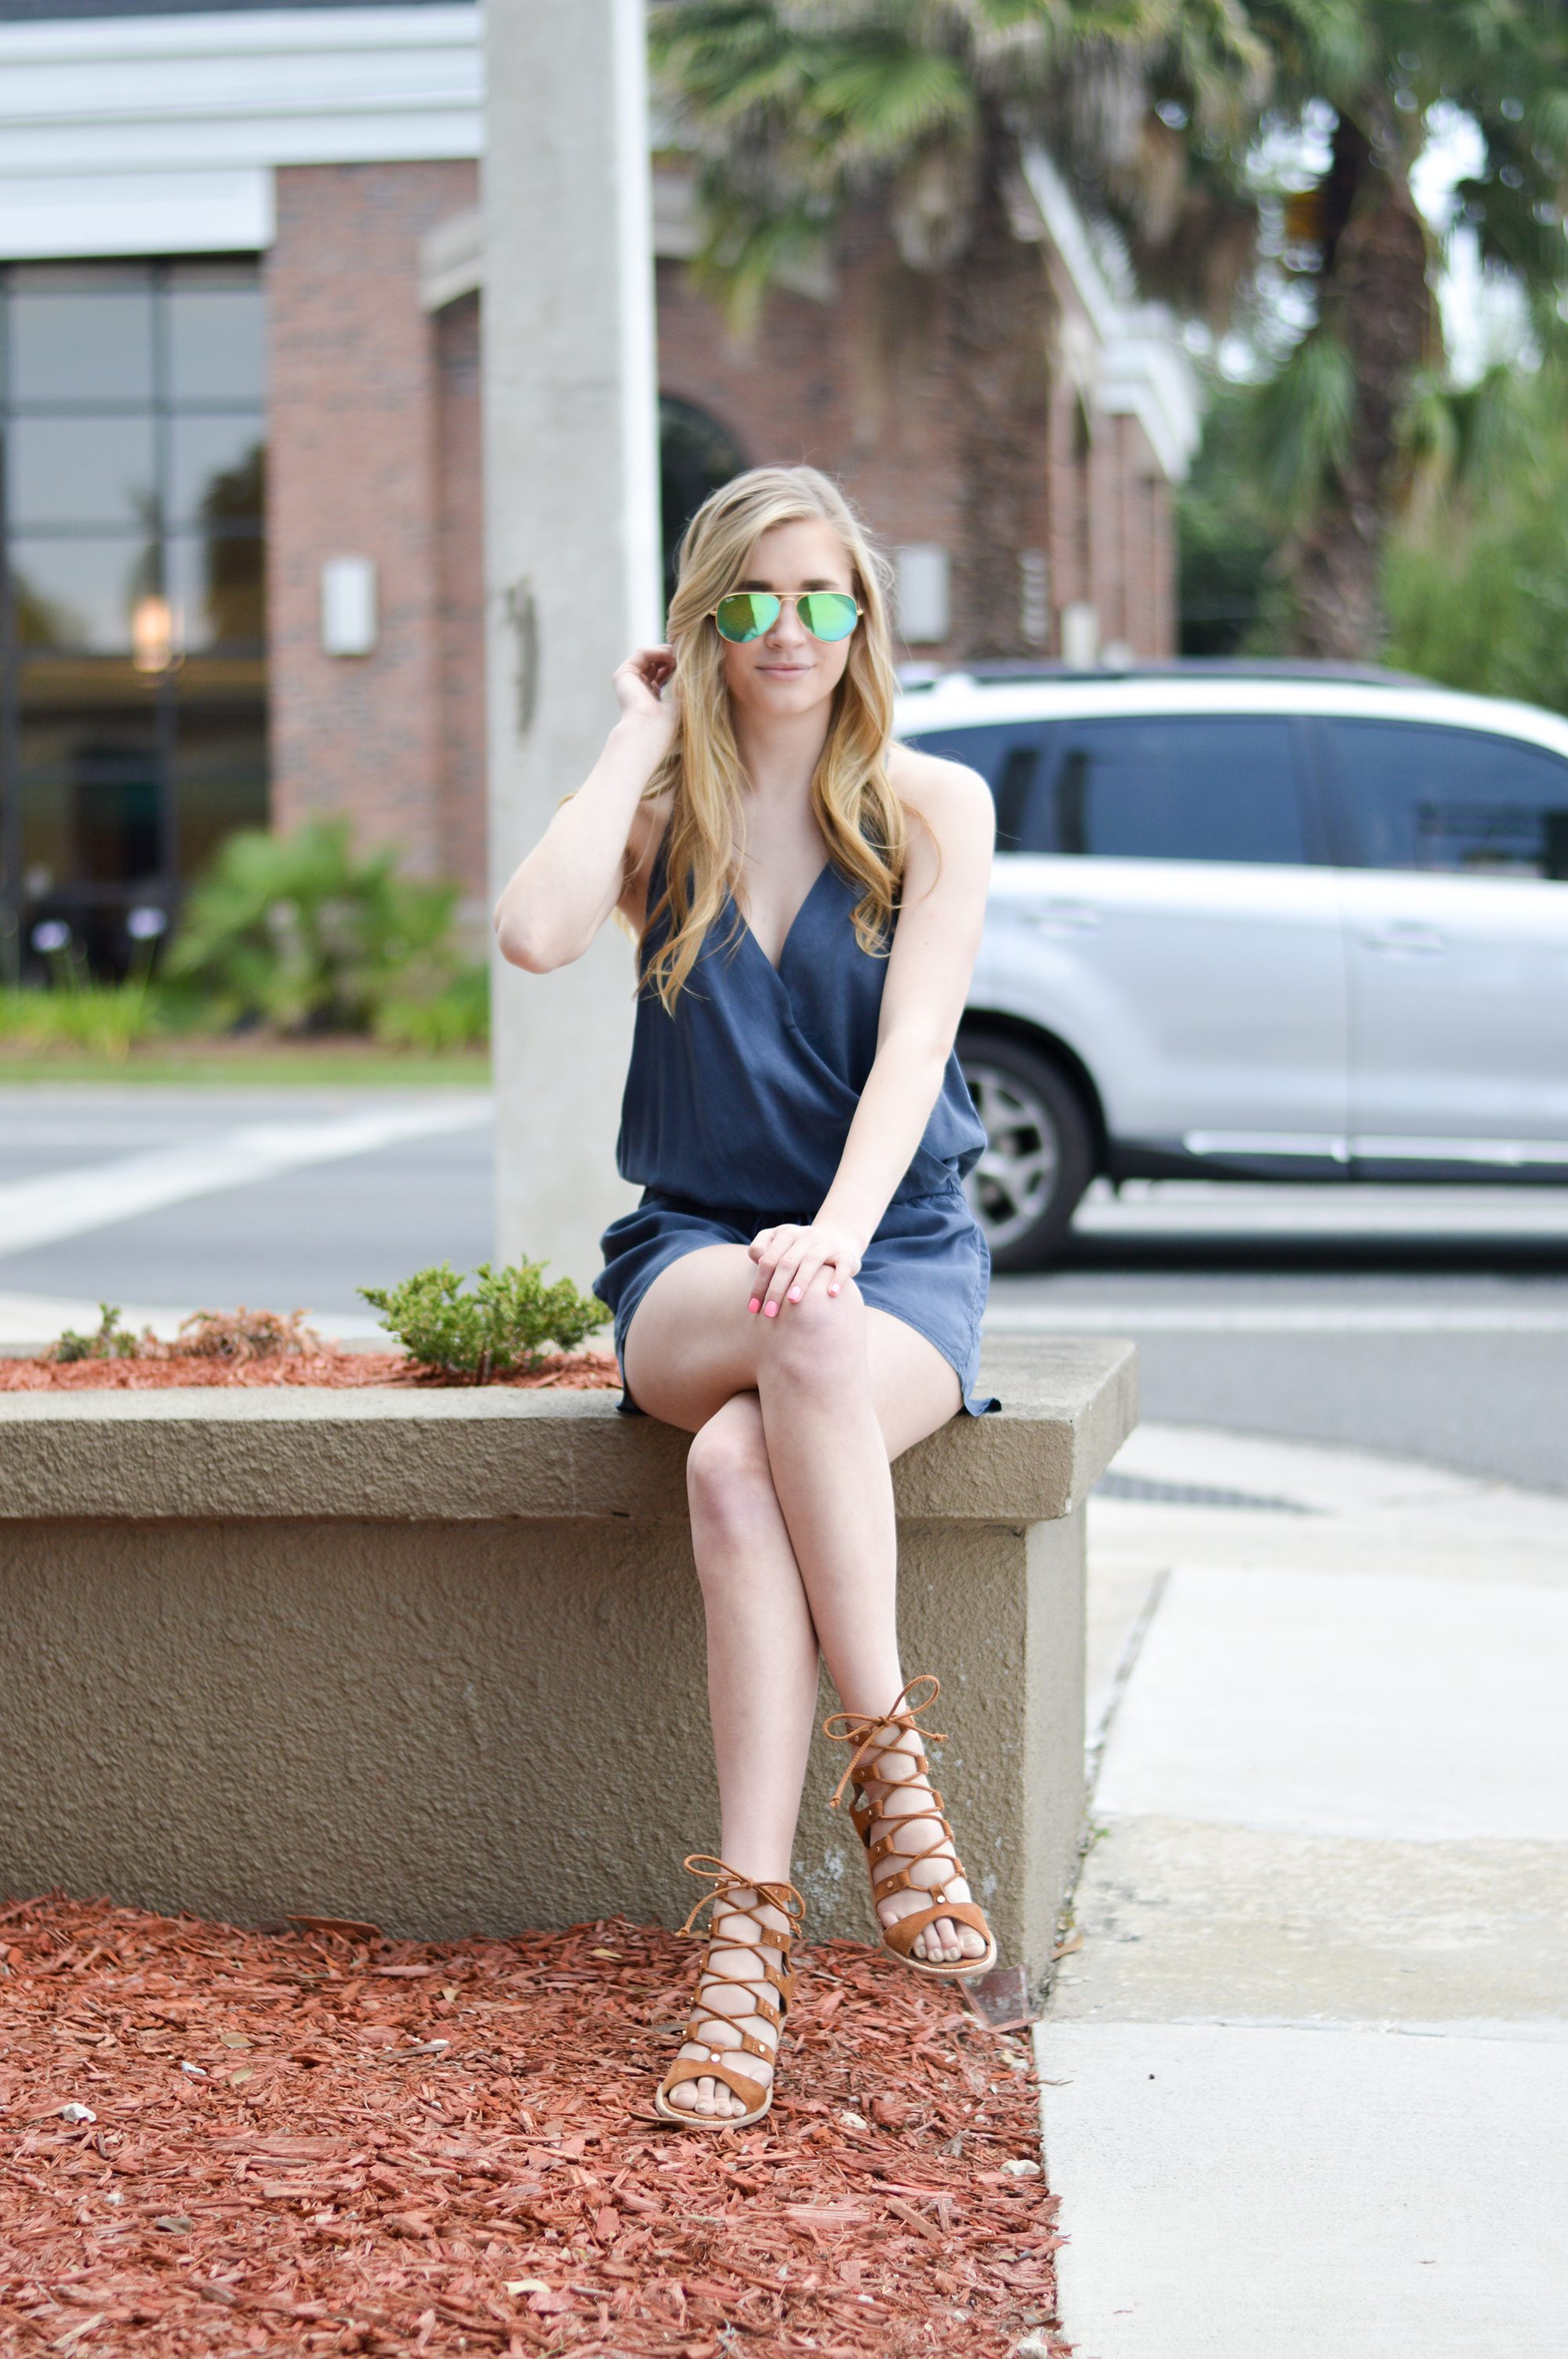 styelled blog, elle elisabeth, bella dahl, romper, the lost society, ray ban, tie dye, 7 for all mankind, 7 jeans, summer style, summer trends, style blogger, fashion blogger, dolce vita - 03